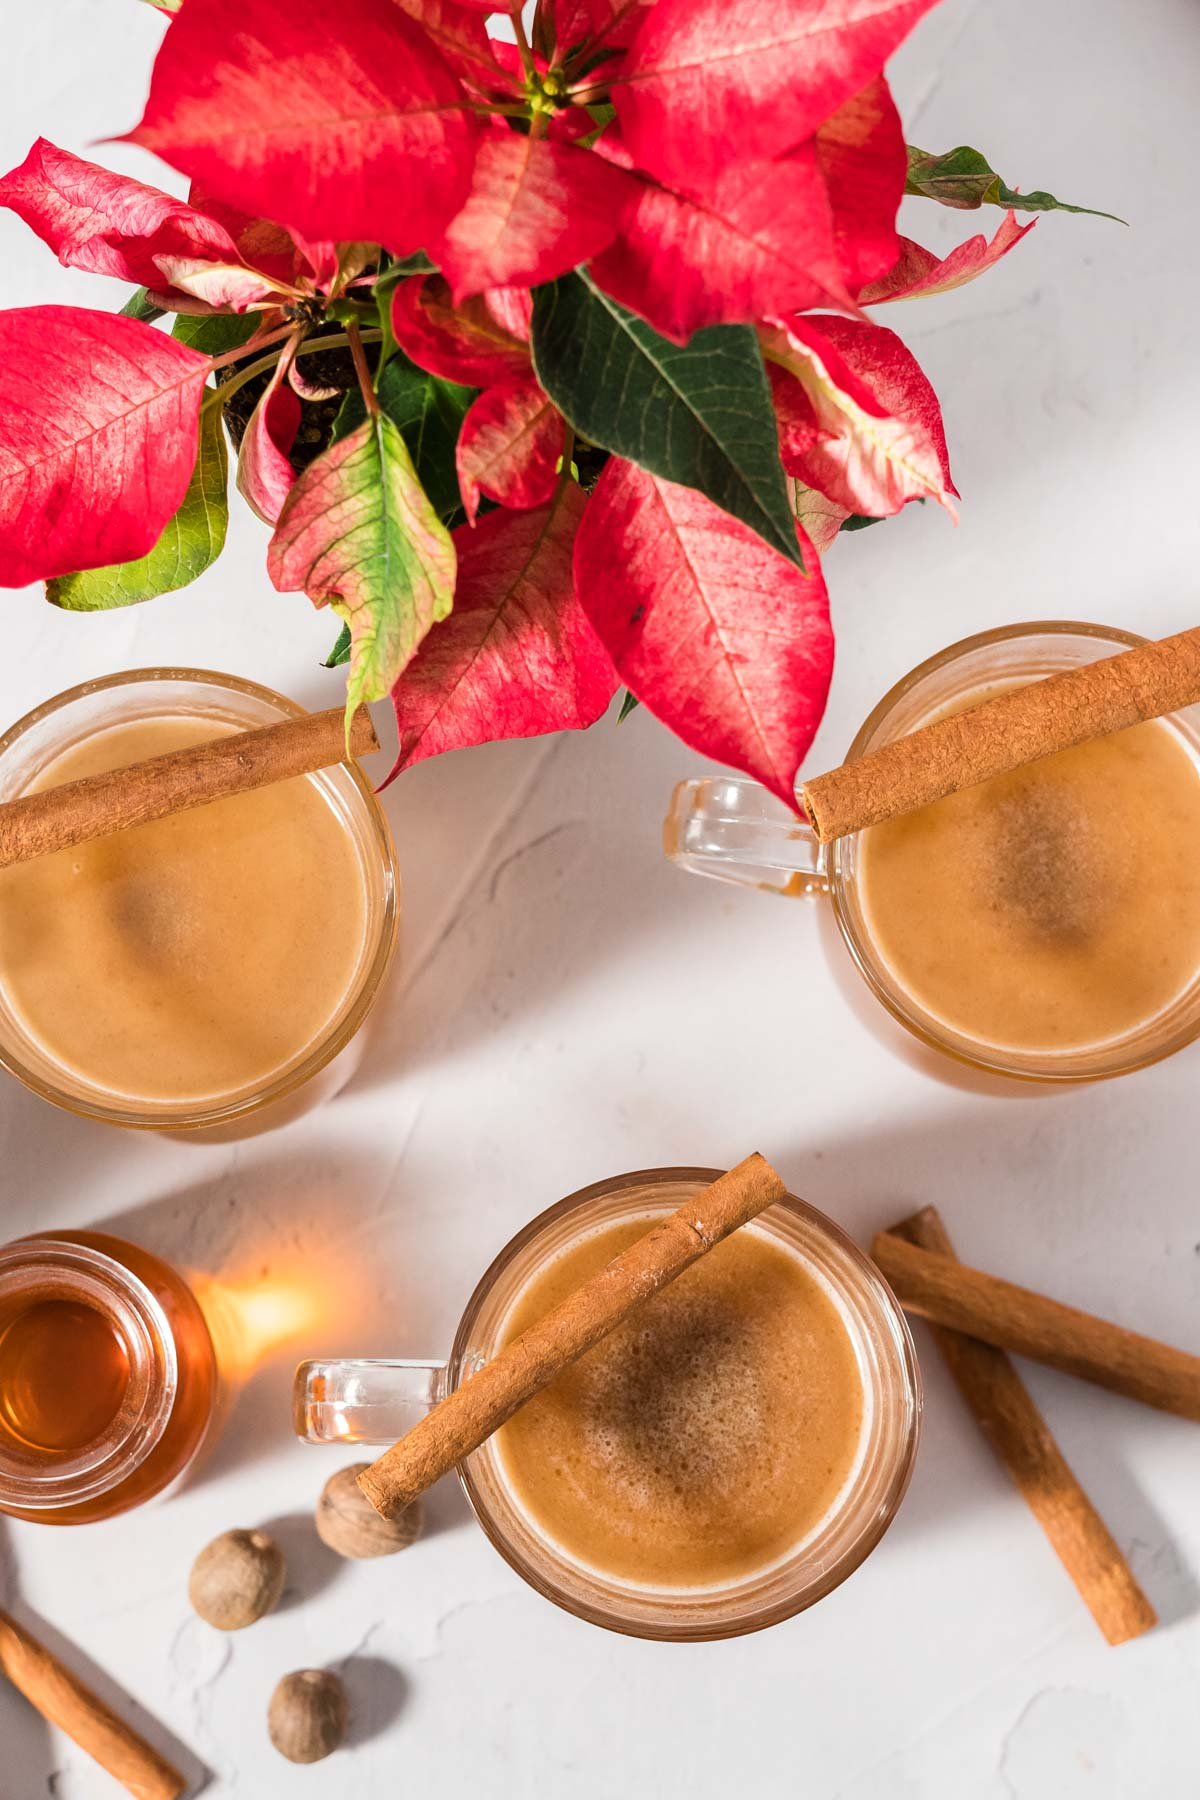 Overhead view of hot buttered rum in mugs garnished with cinnamon sticks beside a poinsettia.